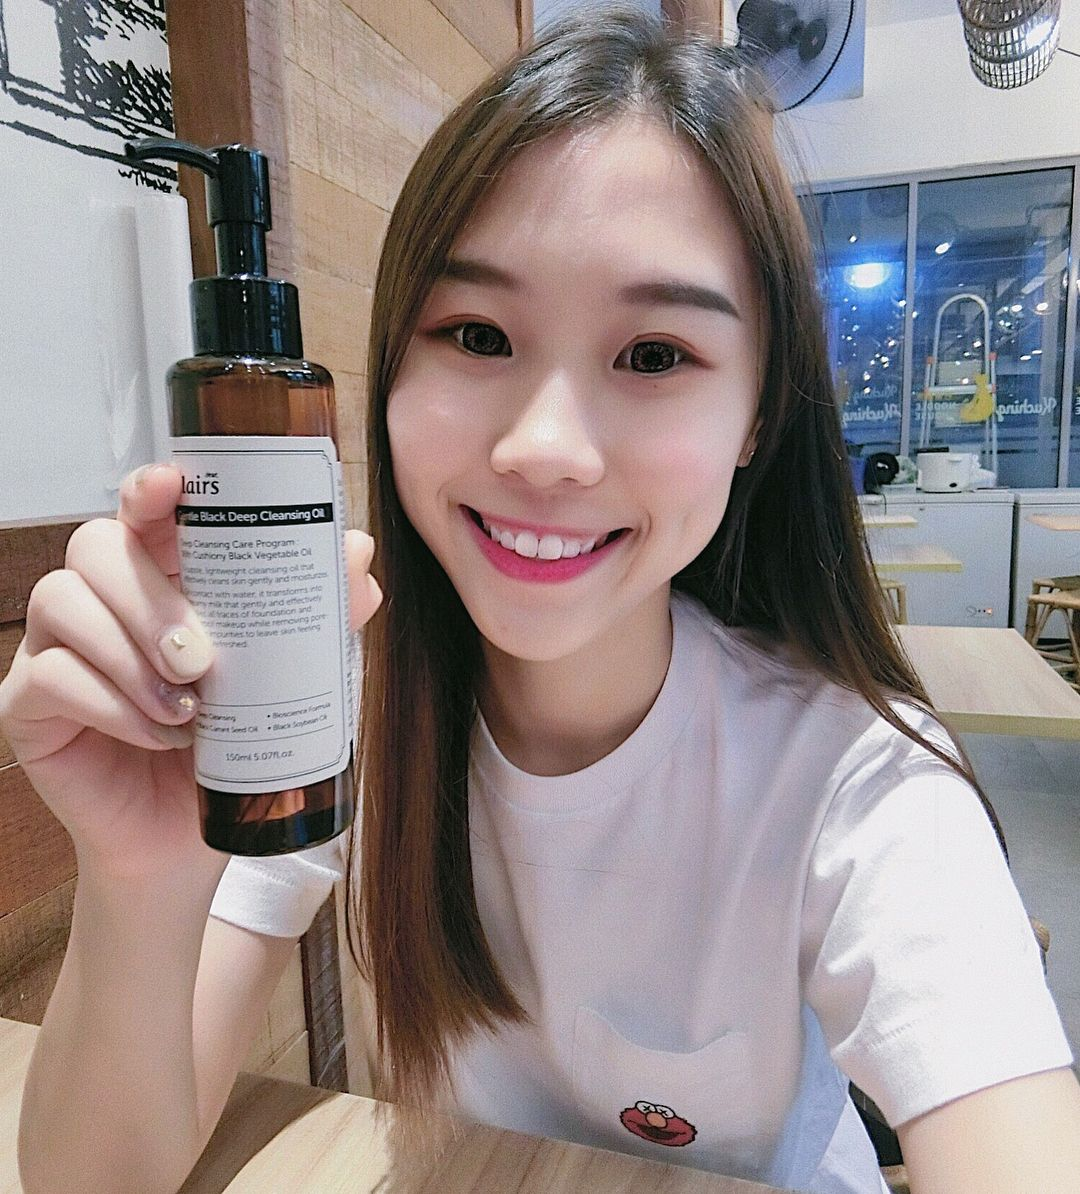 Klairs Gentle Black Deep Cleansing Oil Composed Of Various Vegetable Oils That Are Helpful For Skin Care Easily Wa Deep Cleansing Oil Cleansing Oil Skin Care